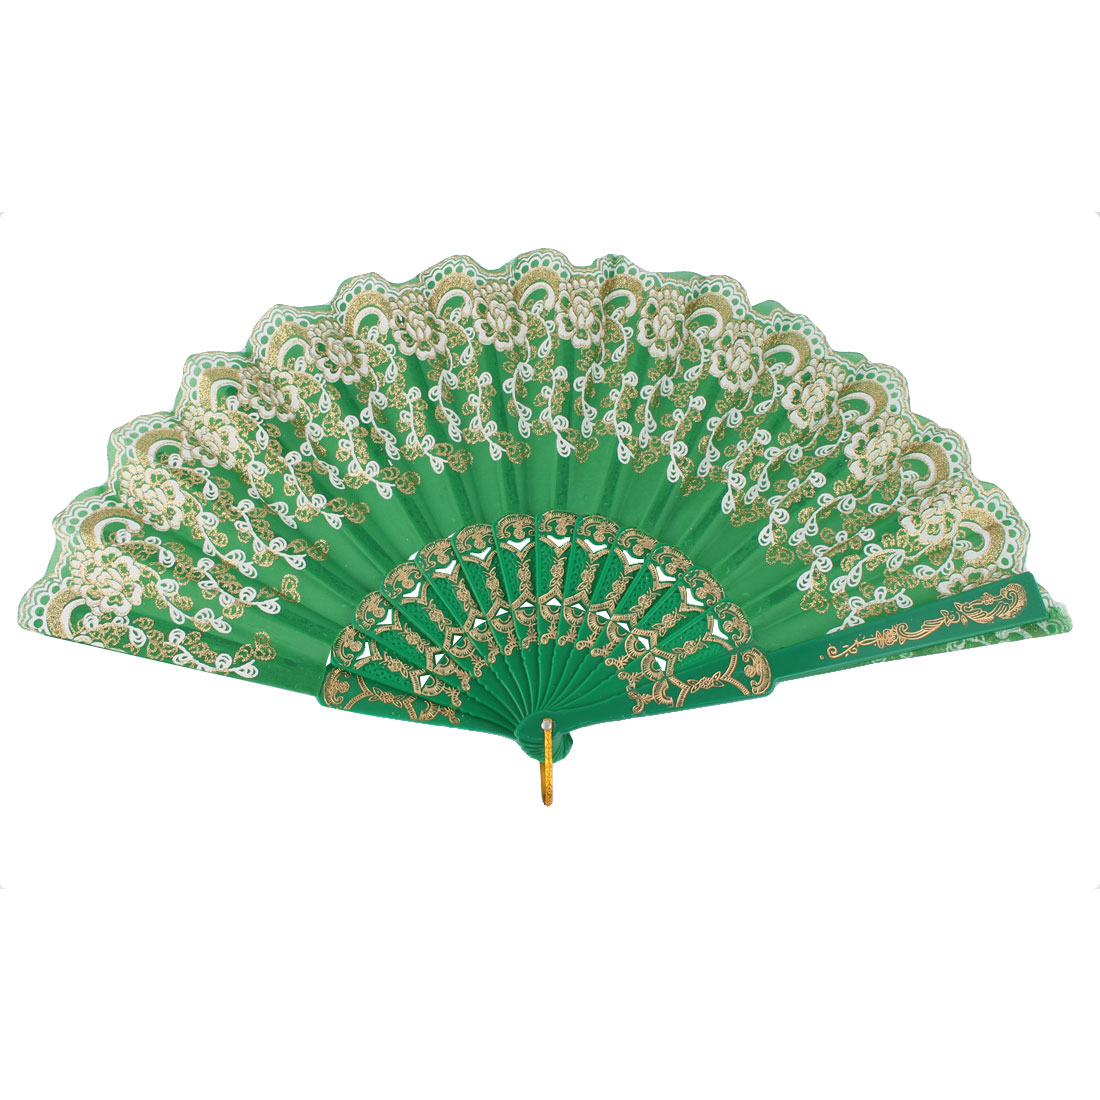 Dancing Wedding Chinese Style Leaf Pattern Folding Hand Fan Green Gold Tone